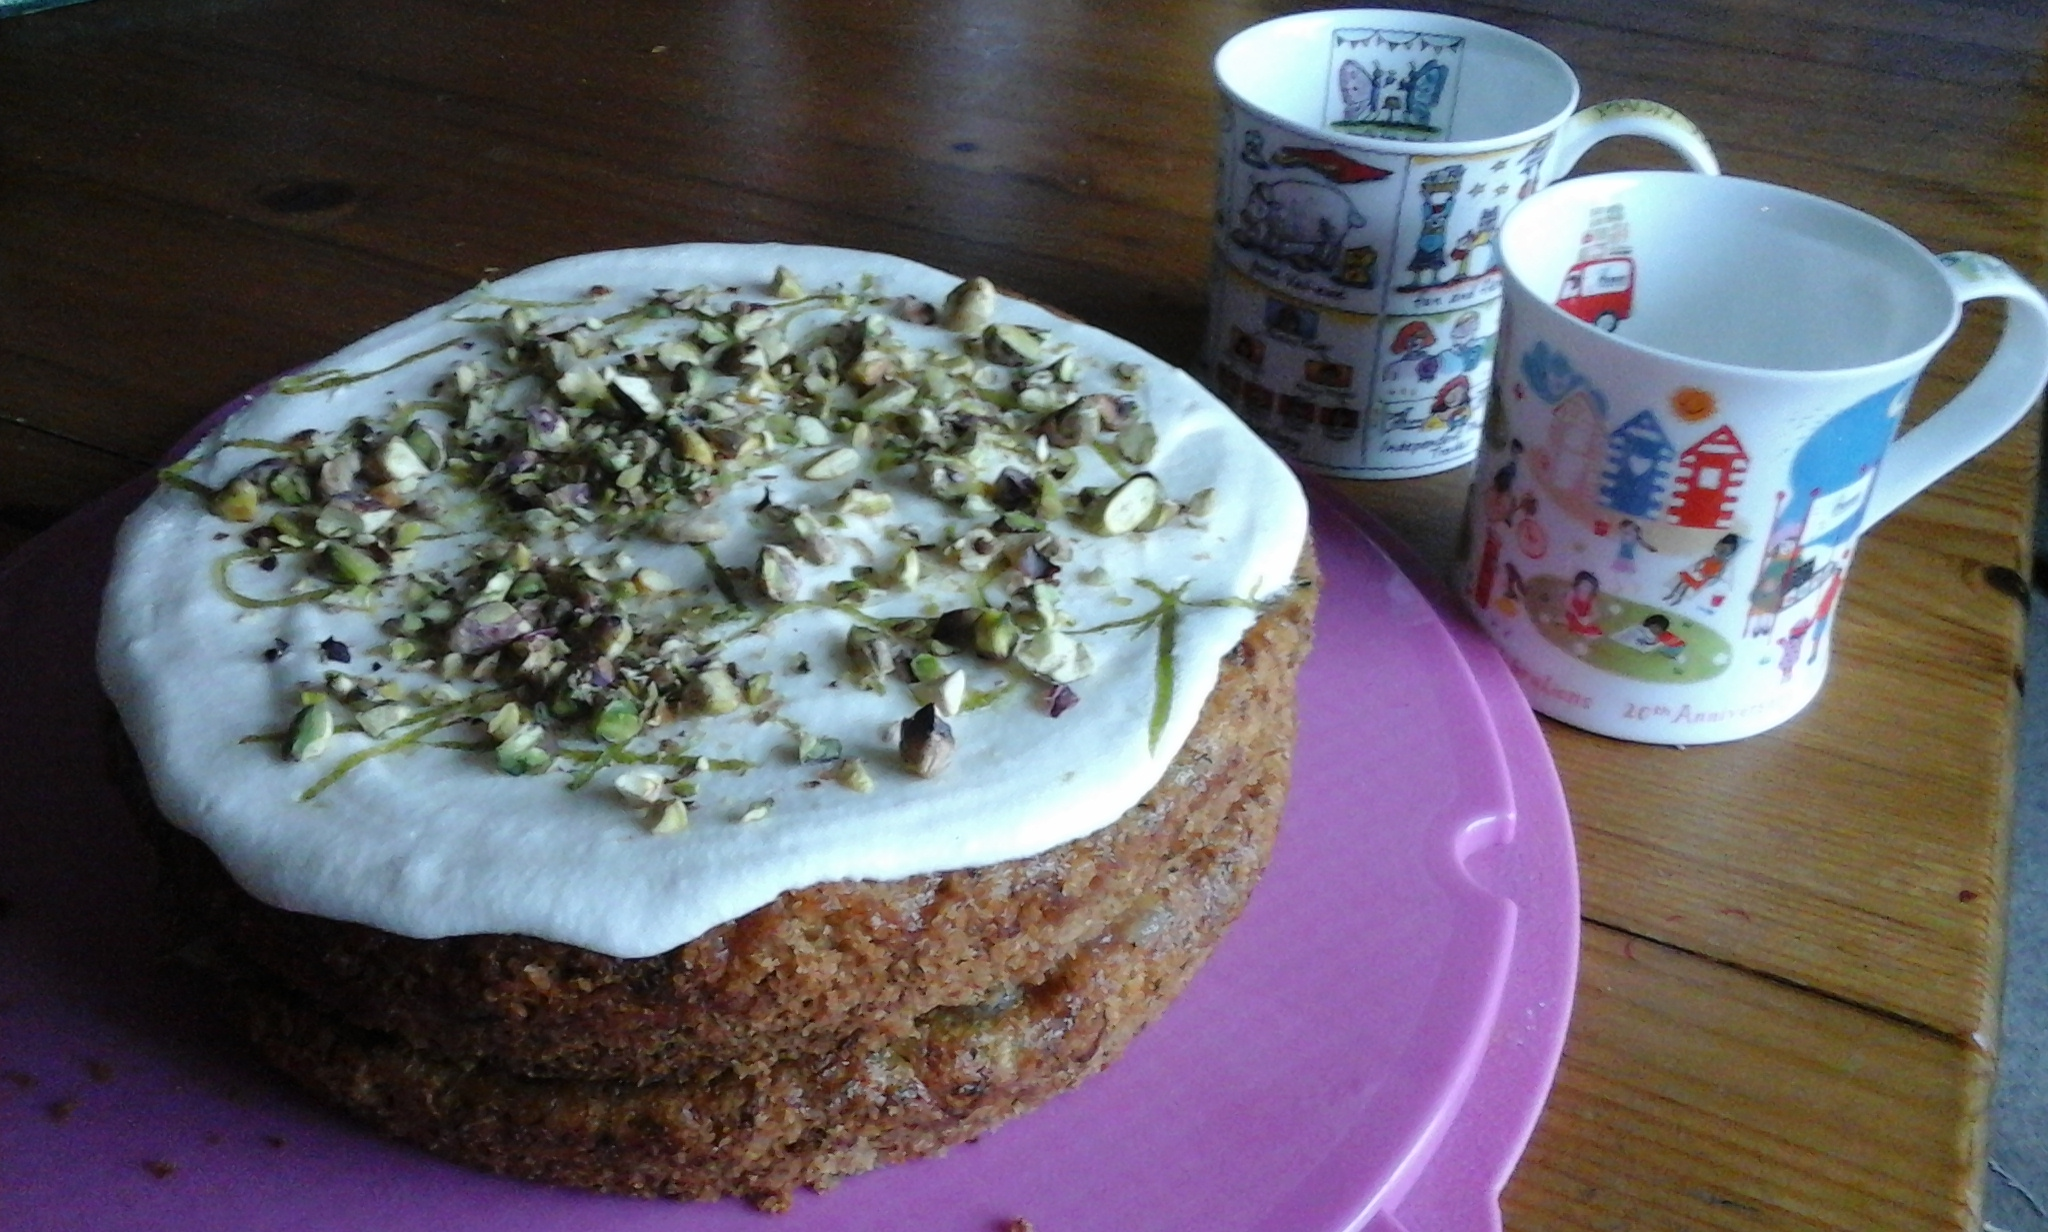 Courgette cake with lemon and lime marmalade